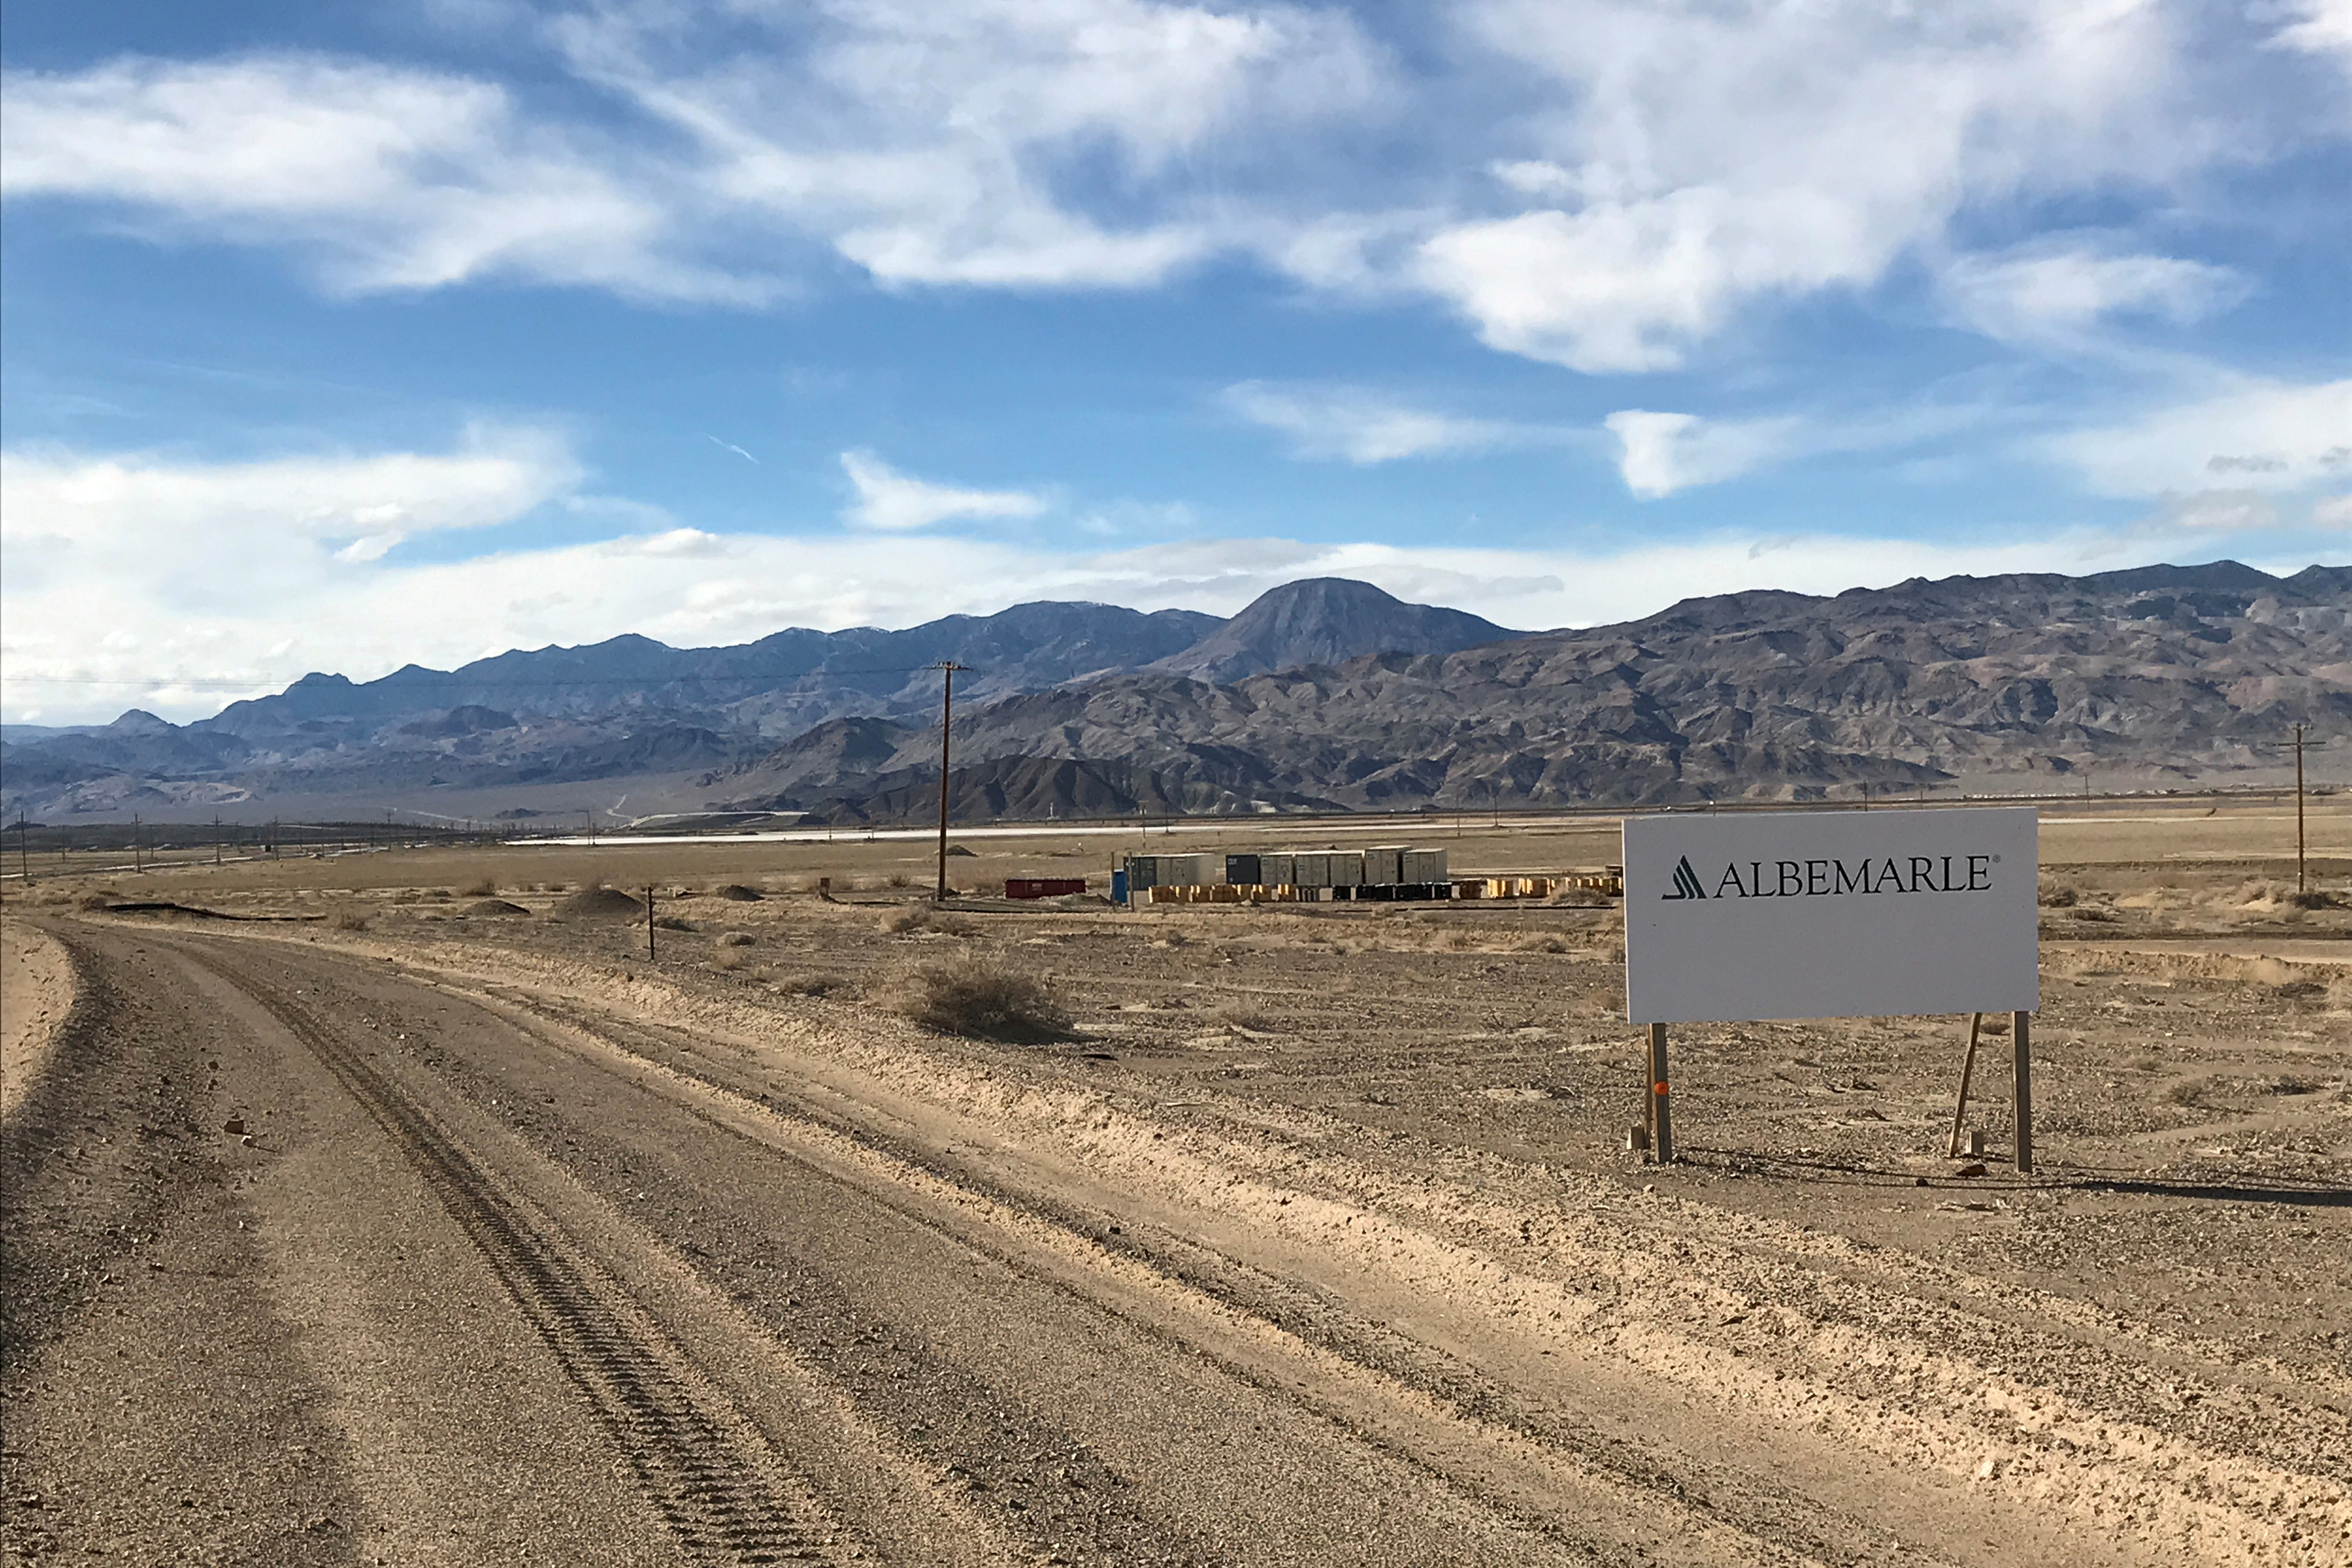 A sign at the approach road leads to Albemarle's lithium evaporation ponds at its facility in Silver Peak, Nevada, U.S., January 9, 2019. REUTERS/Ernest Scheyder/File Photo